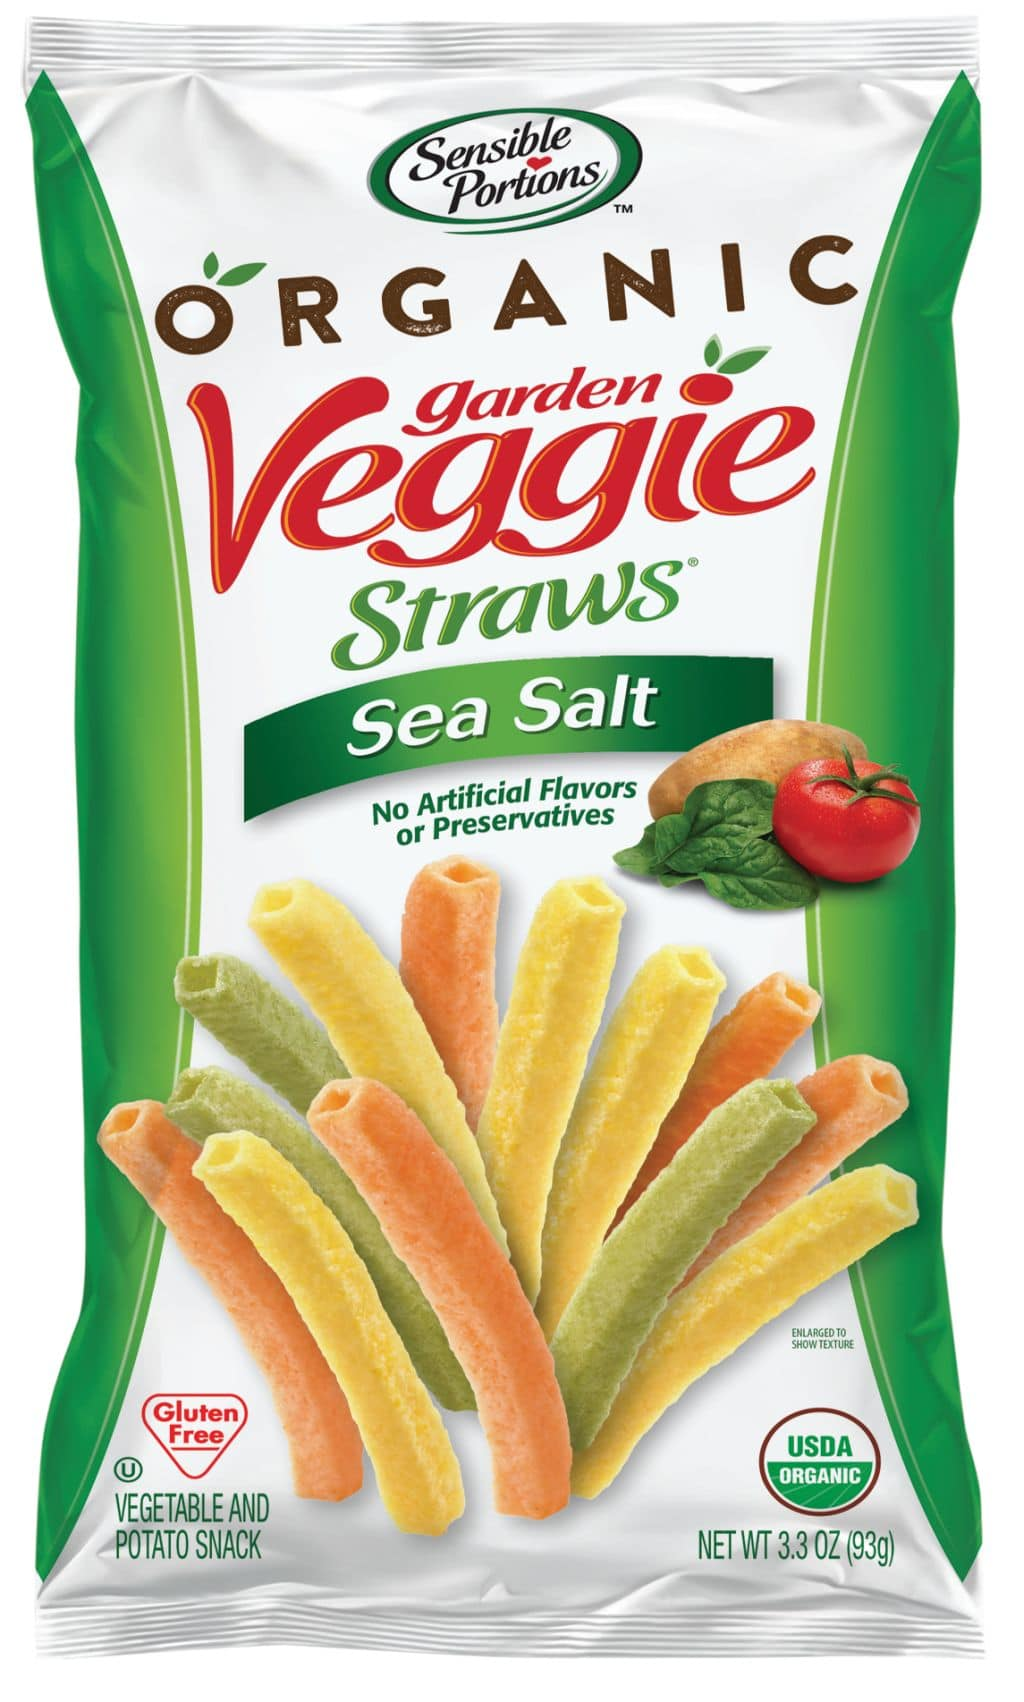 SP Org VeggieStraws SS 3p3oz 616x1024 - Natural Products Expo West 2018: Exhibitors to put on your visit list